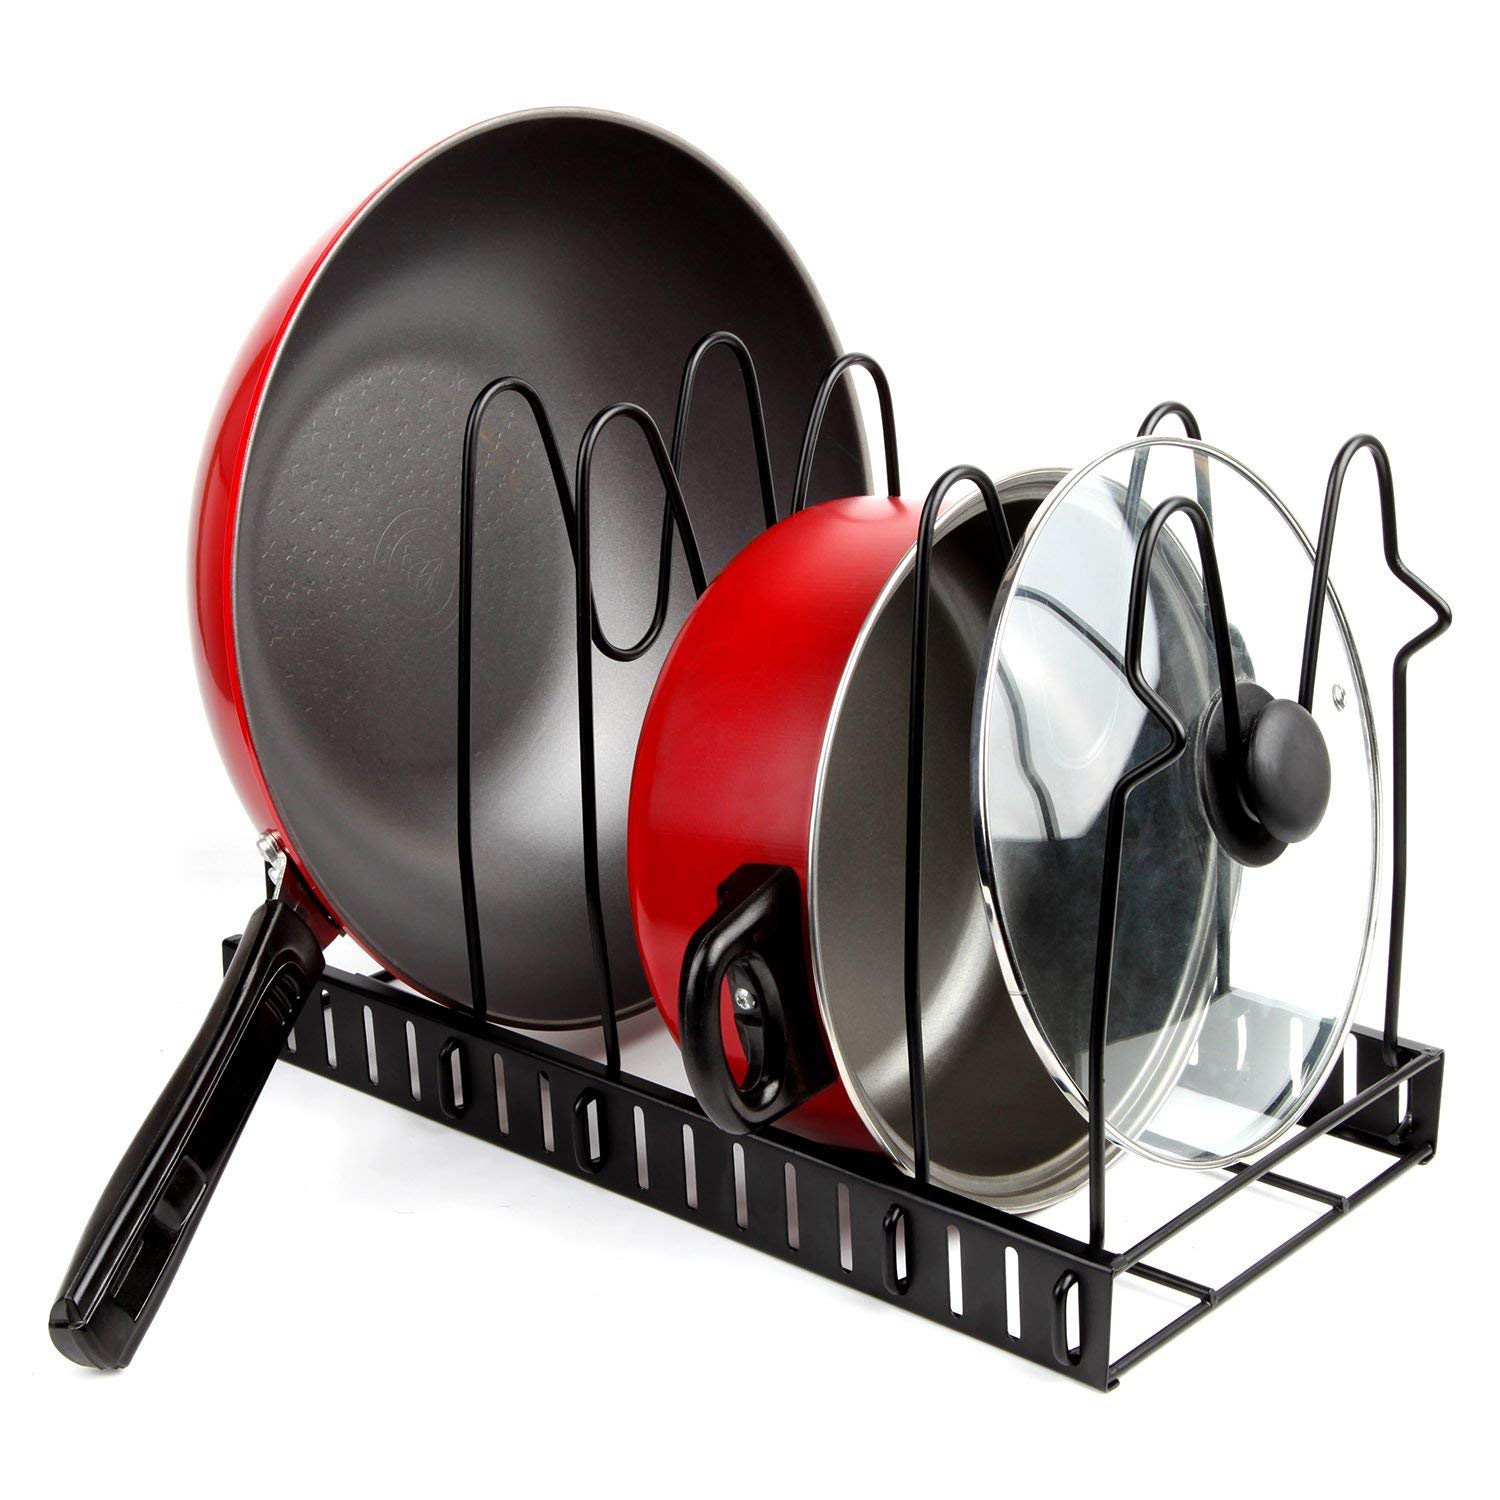 Pan Organizer Pot Rack Lid Holder Cookware Holders Adjustable Heavy Duty Cabinet Pantry Kitchenware For Kitchen Housekeeper